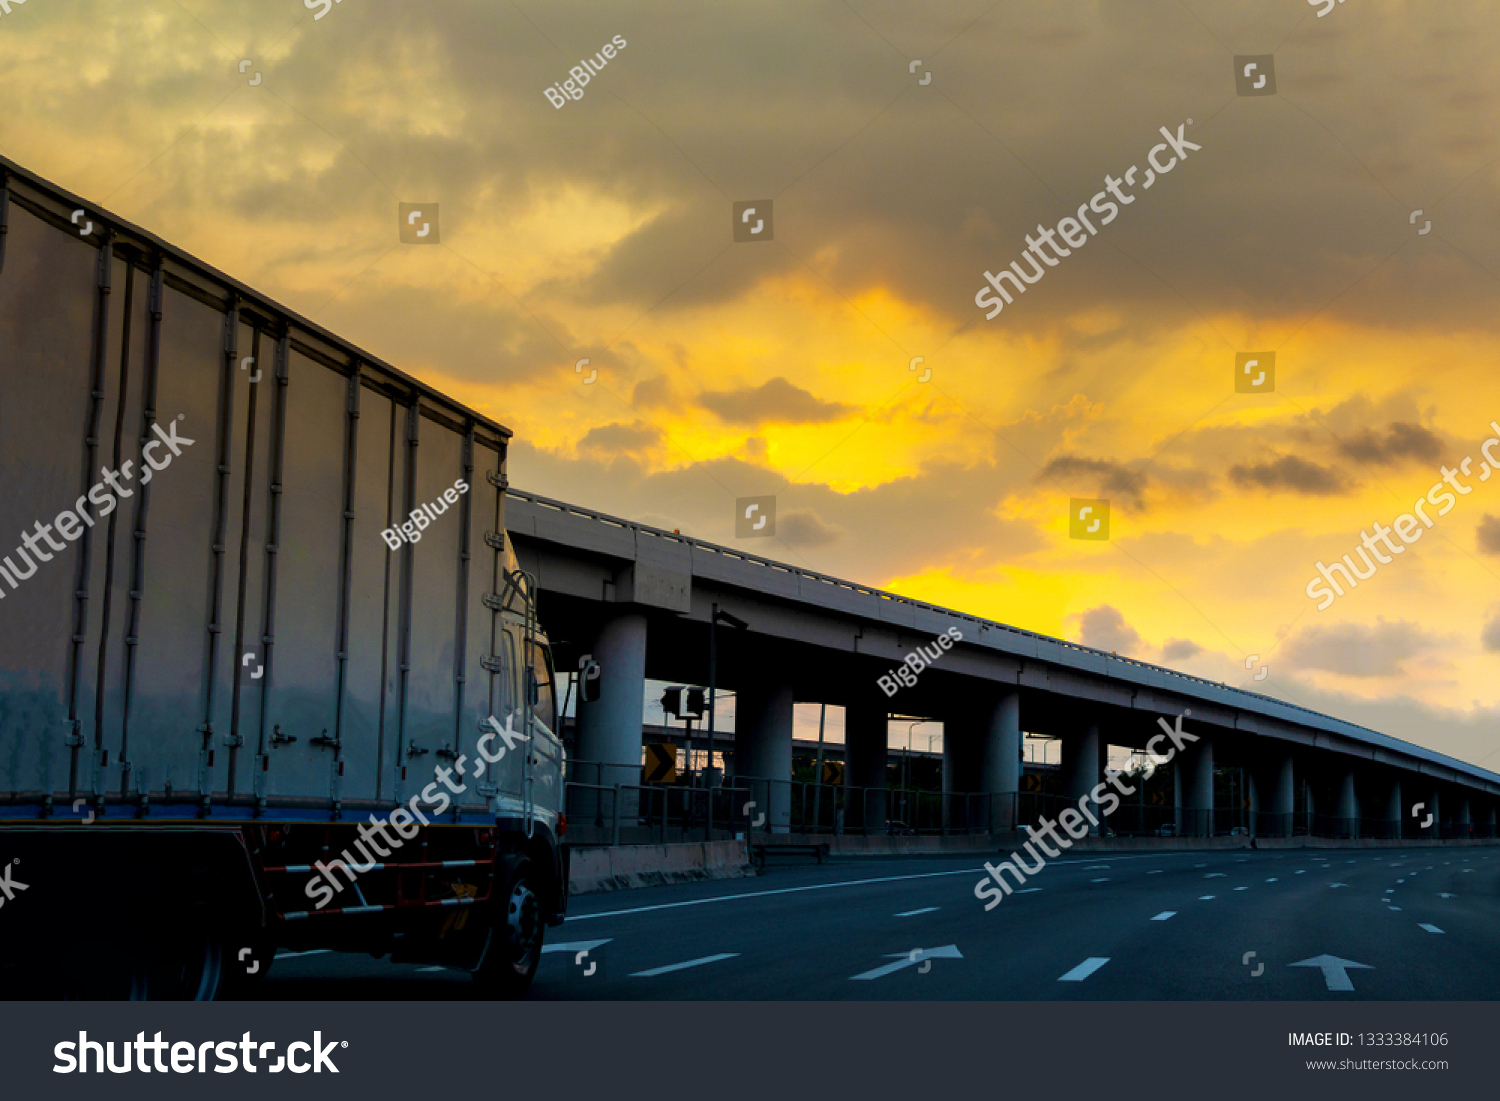 Truck on highway road with container, transportation concept.,import,export logistic industrial Transporting Land transport on asphalt expressway with sunrise sky #1333384106